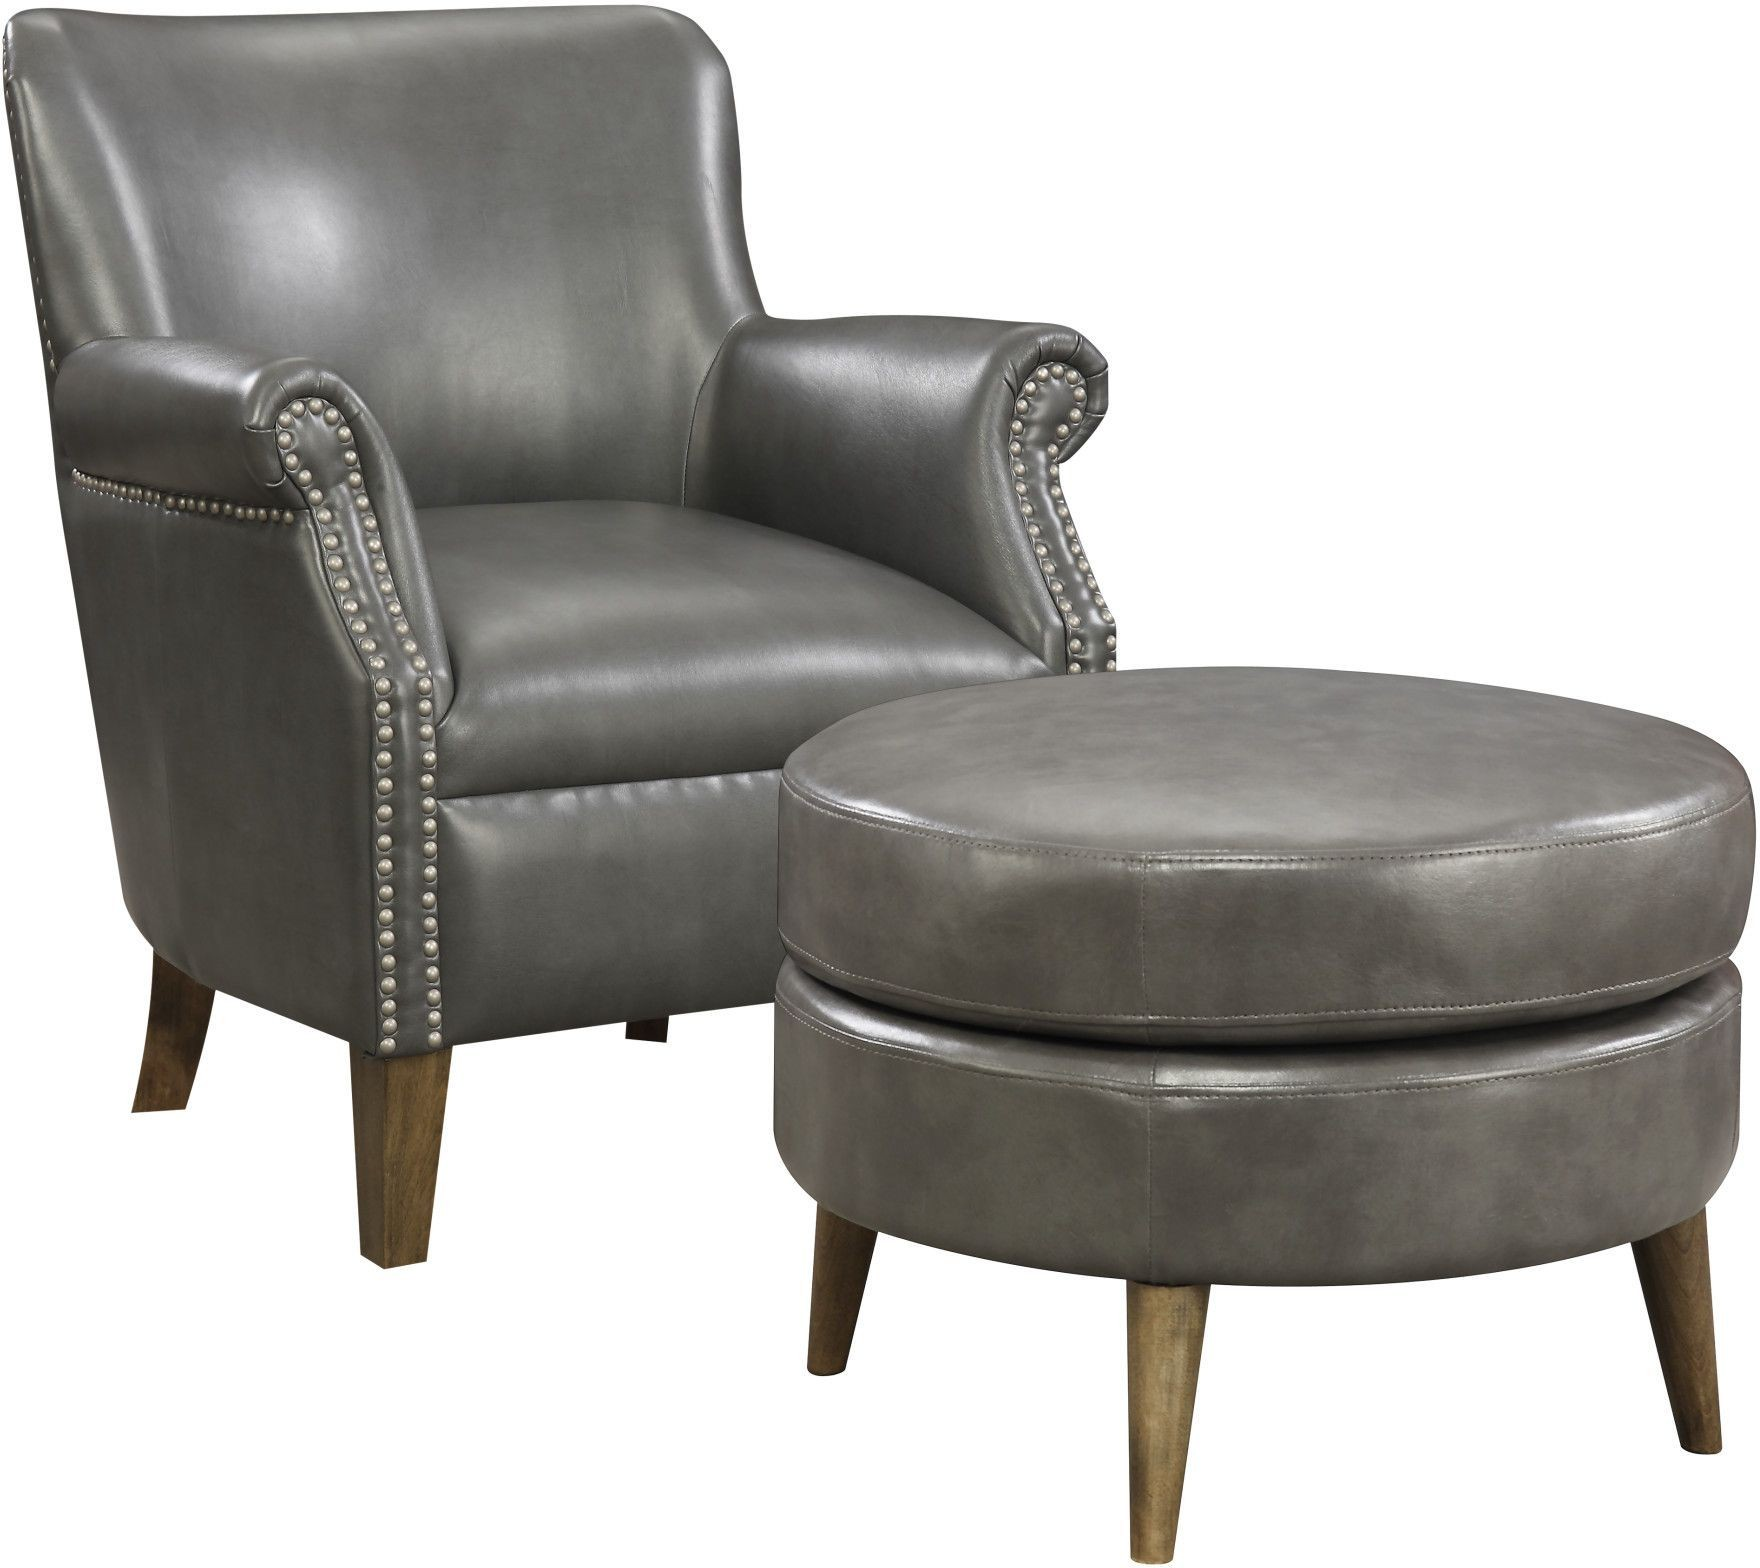 accent chairs with ottoman costco chair mat oscar dark gray and from emerald home